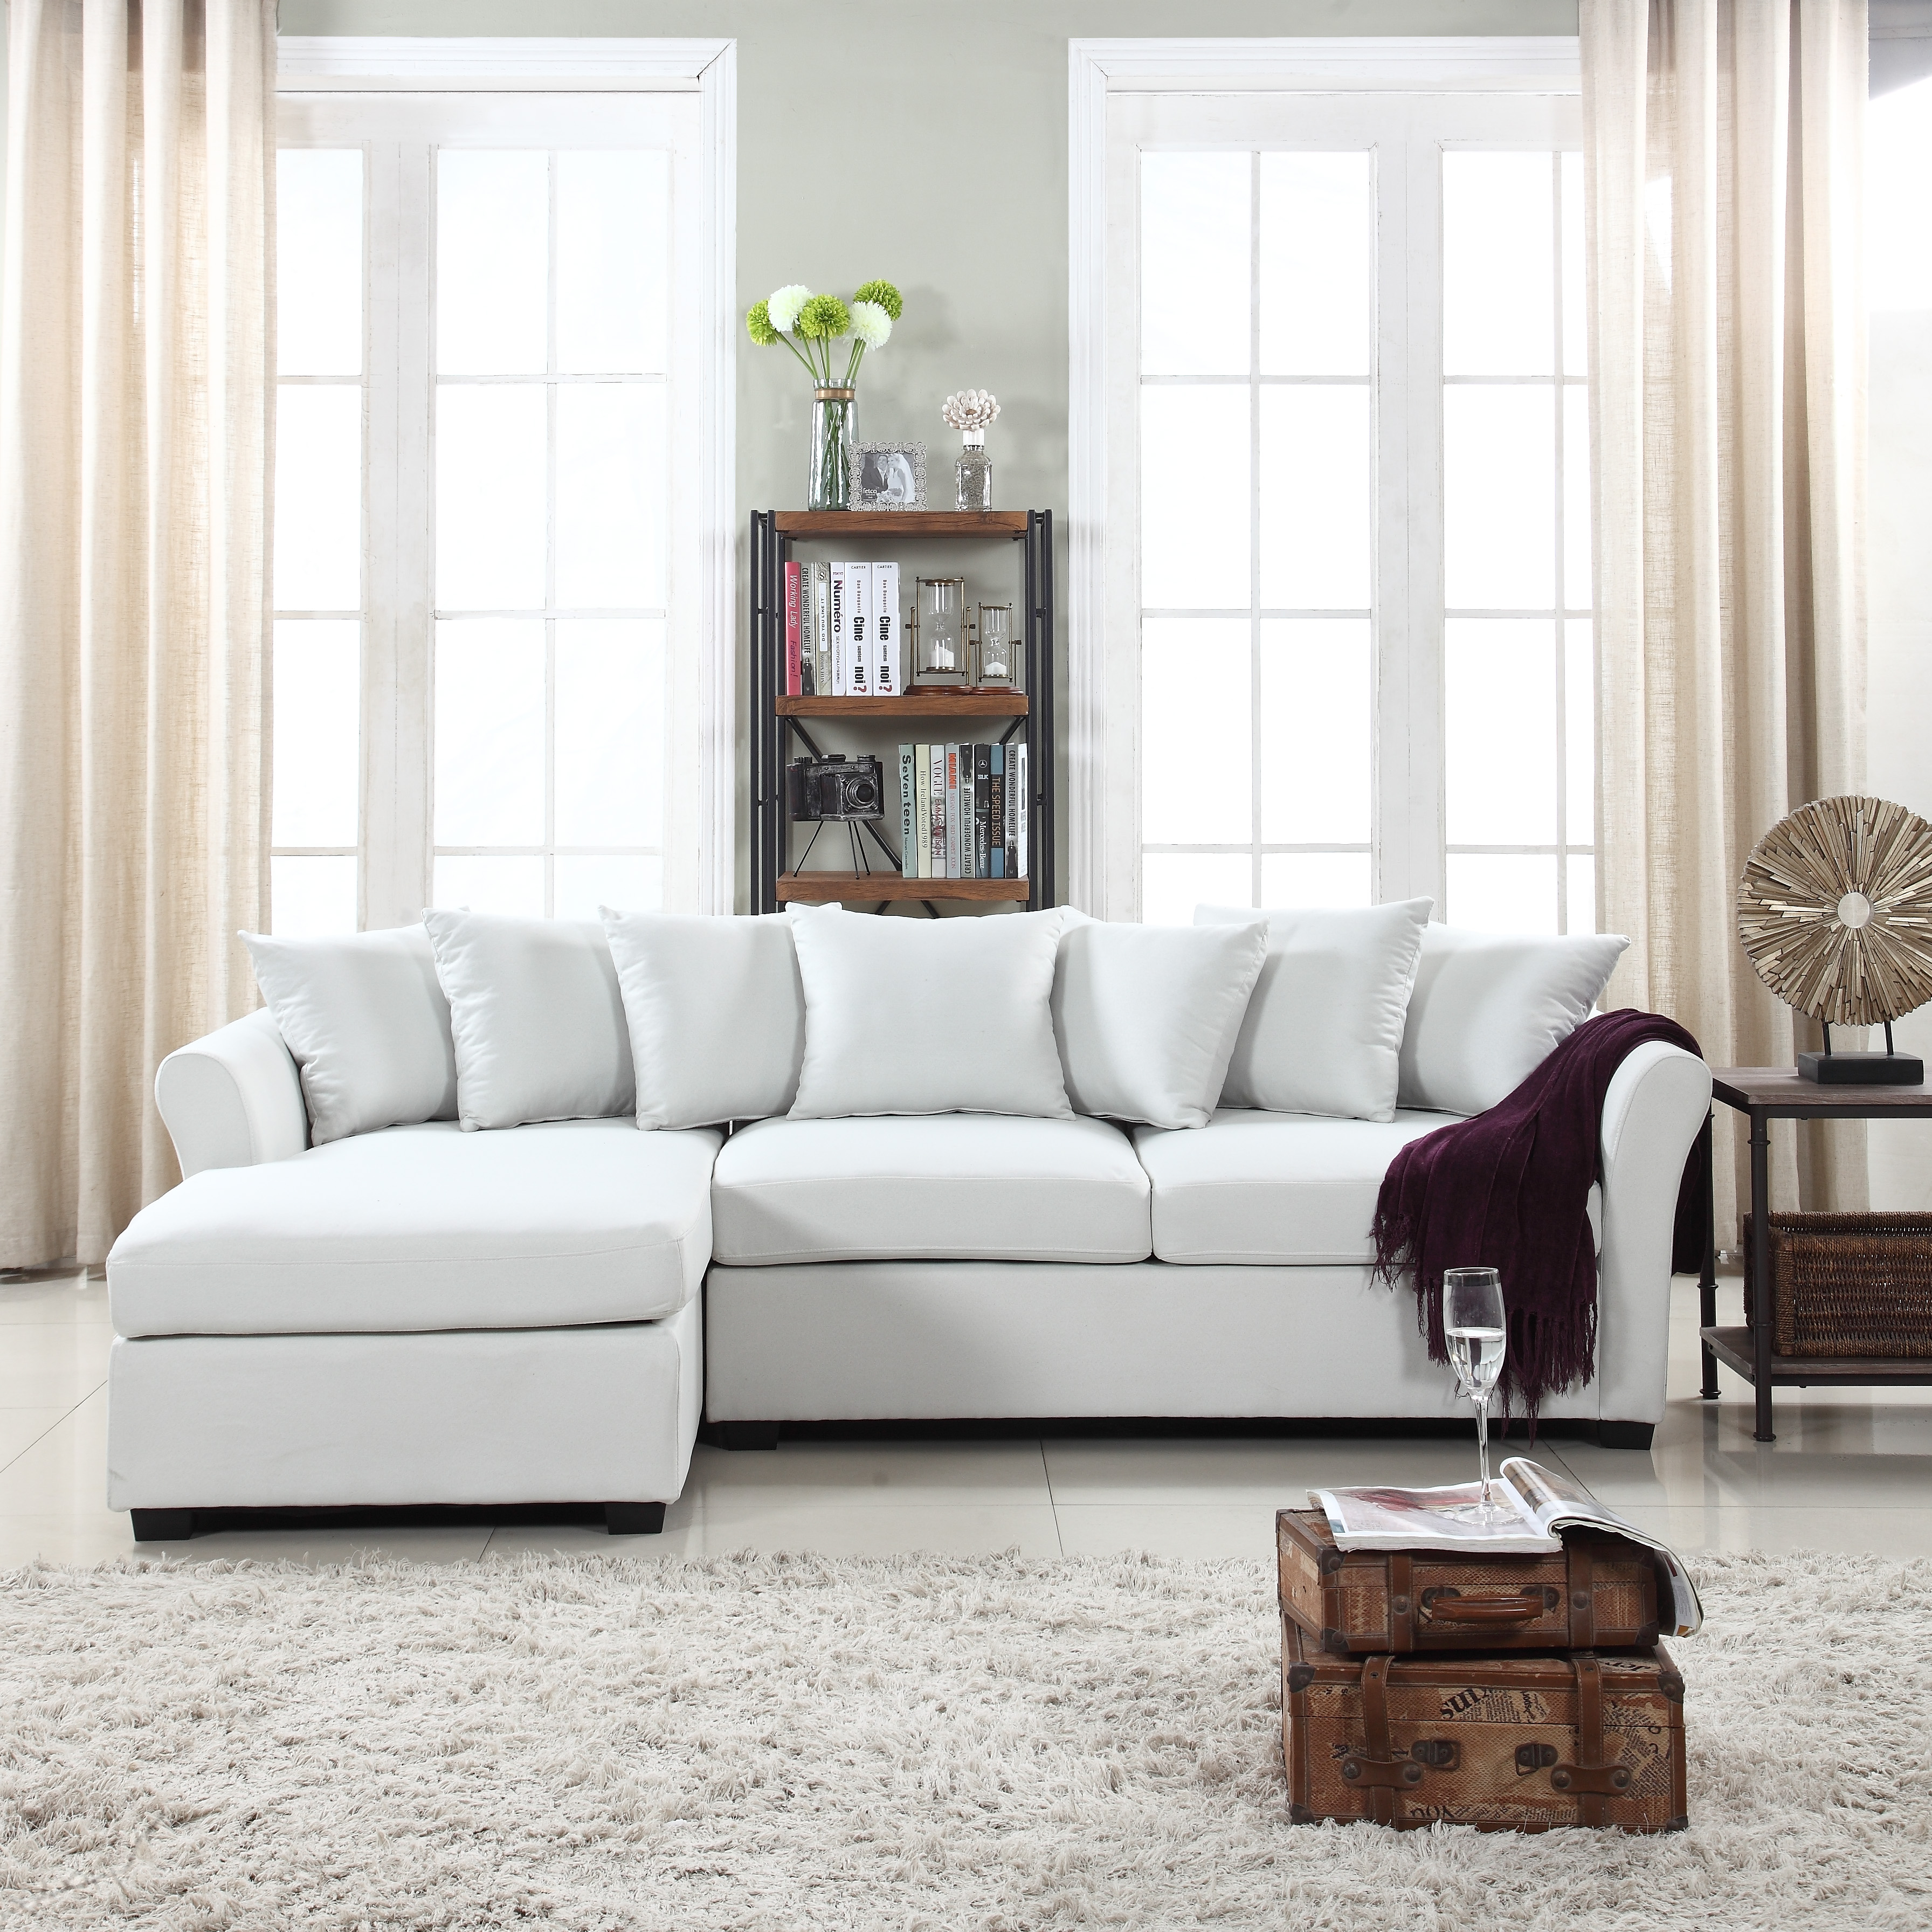 Modern Linen Sectional Sofa with Extra Wide Chaise Lounge